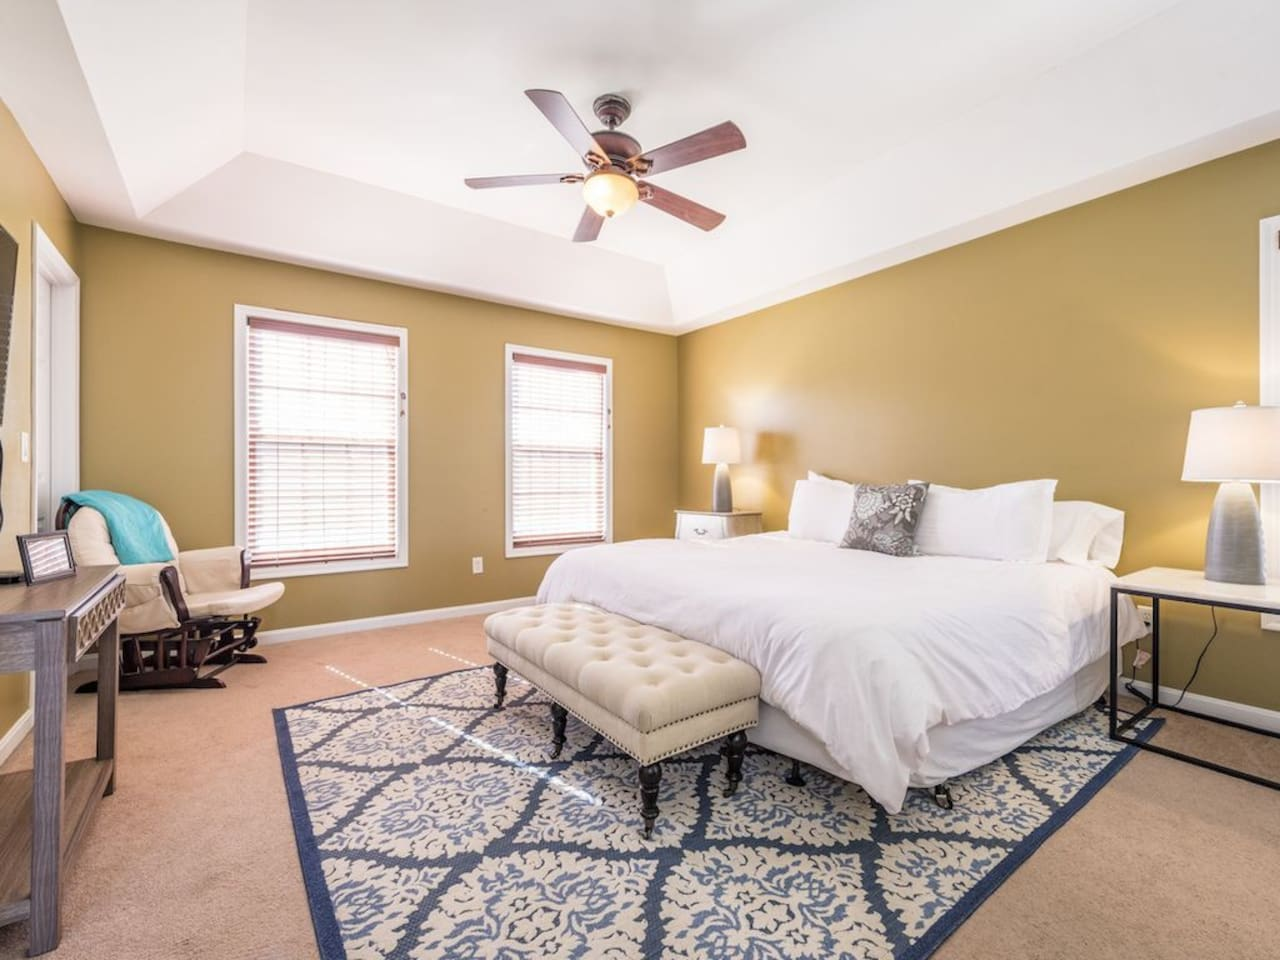 Large Cal King private bedroom w Apple TV, private bath, private / safe community on Golf course.